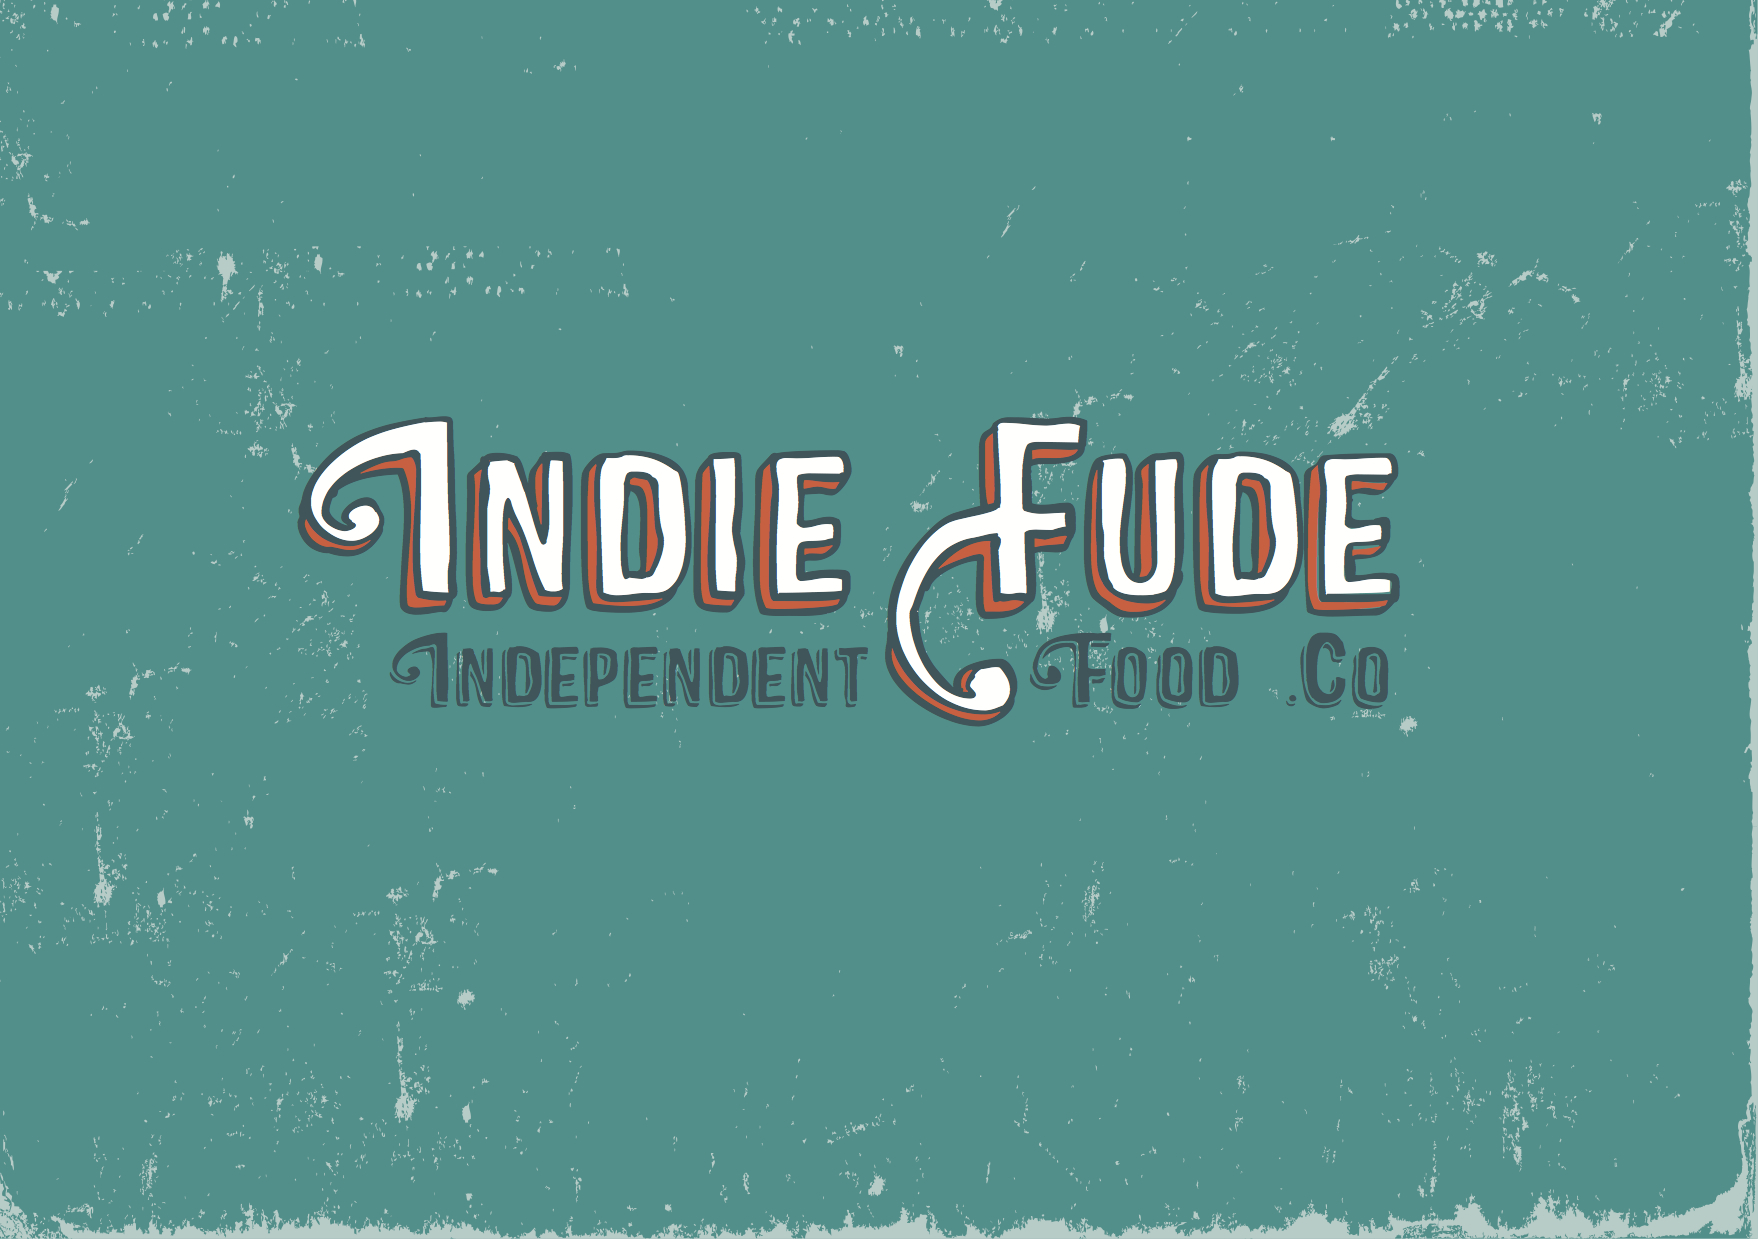 INDIE FUDE LTD